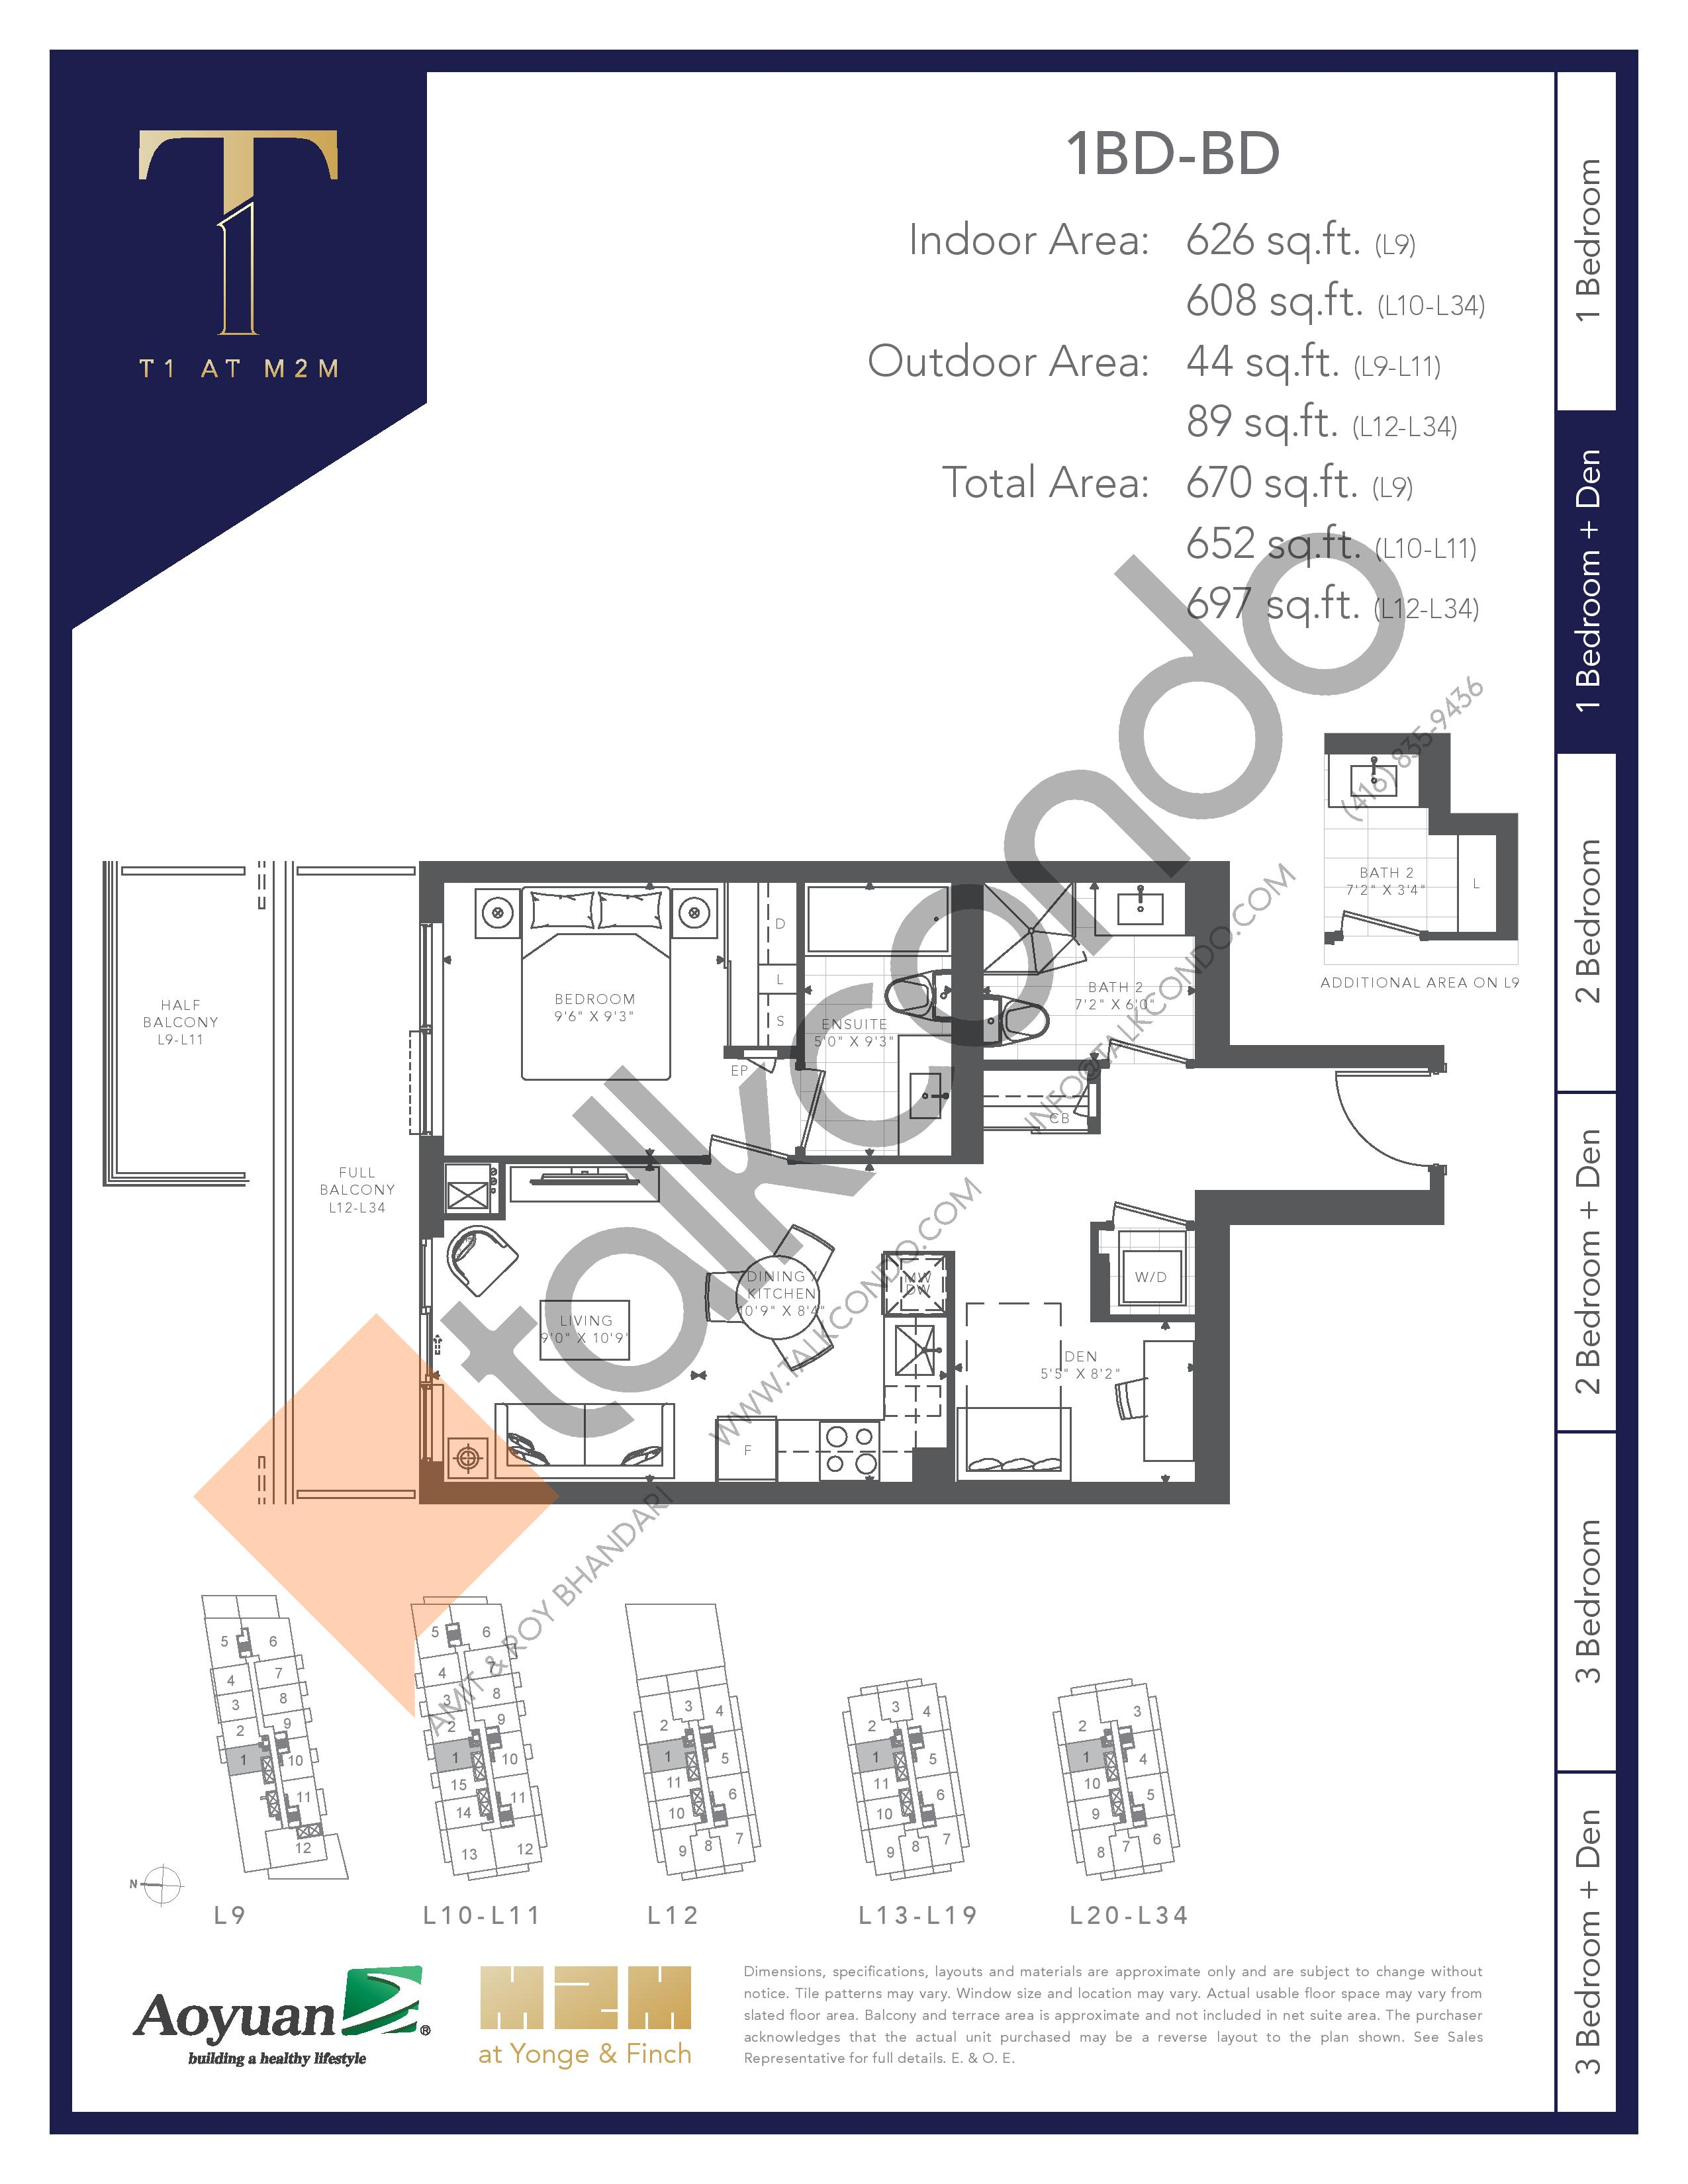 1BD-BD Floor Plan at T1 at M2M Condos - 626 sq.ft